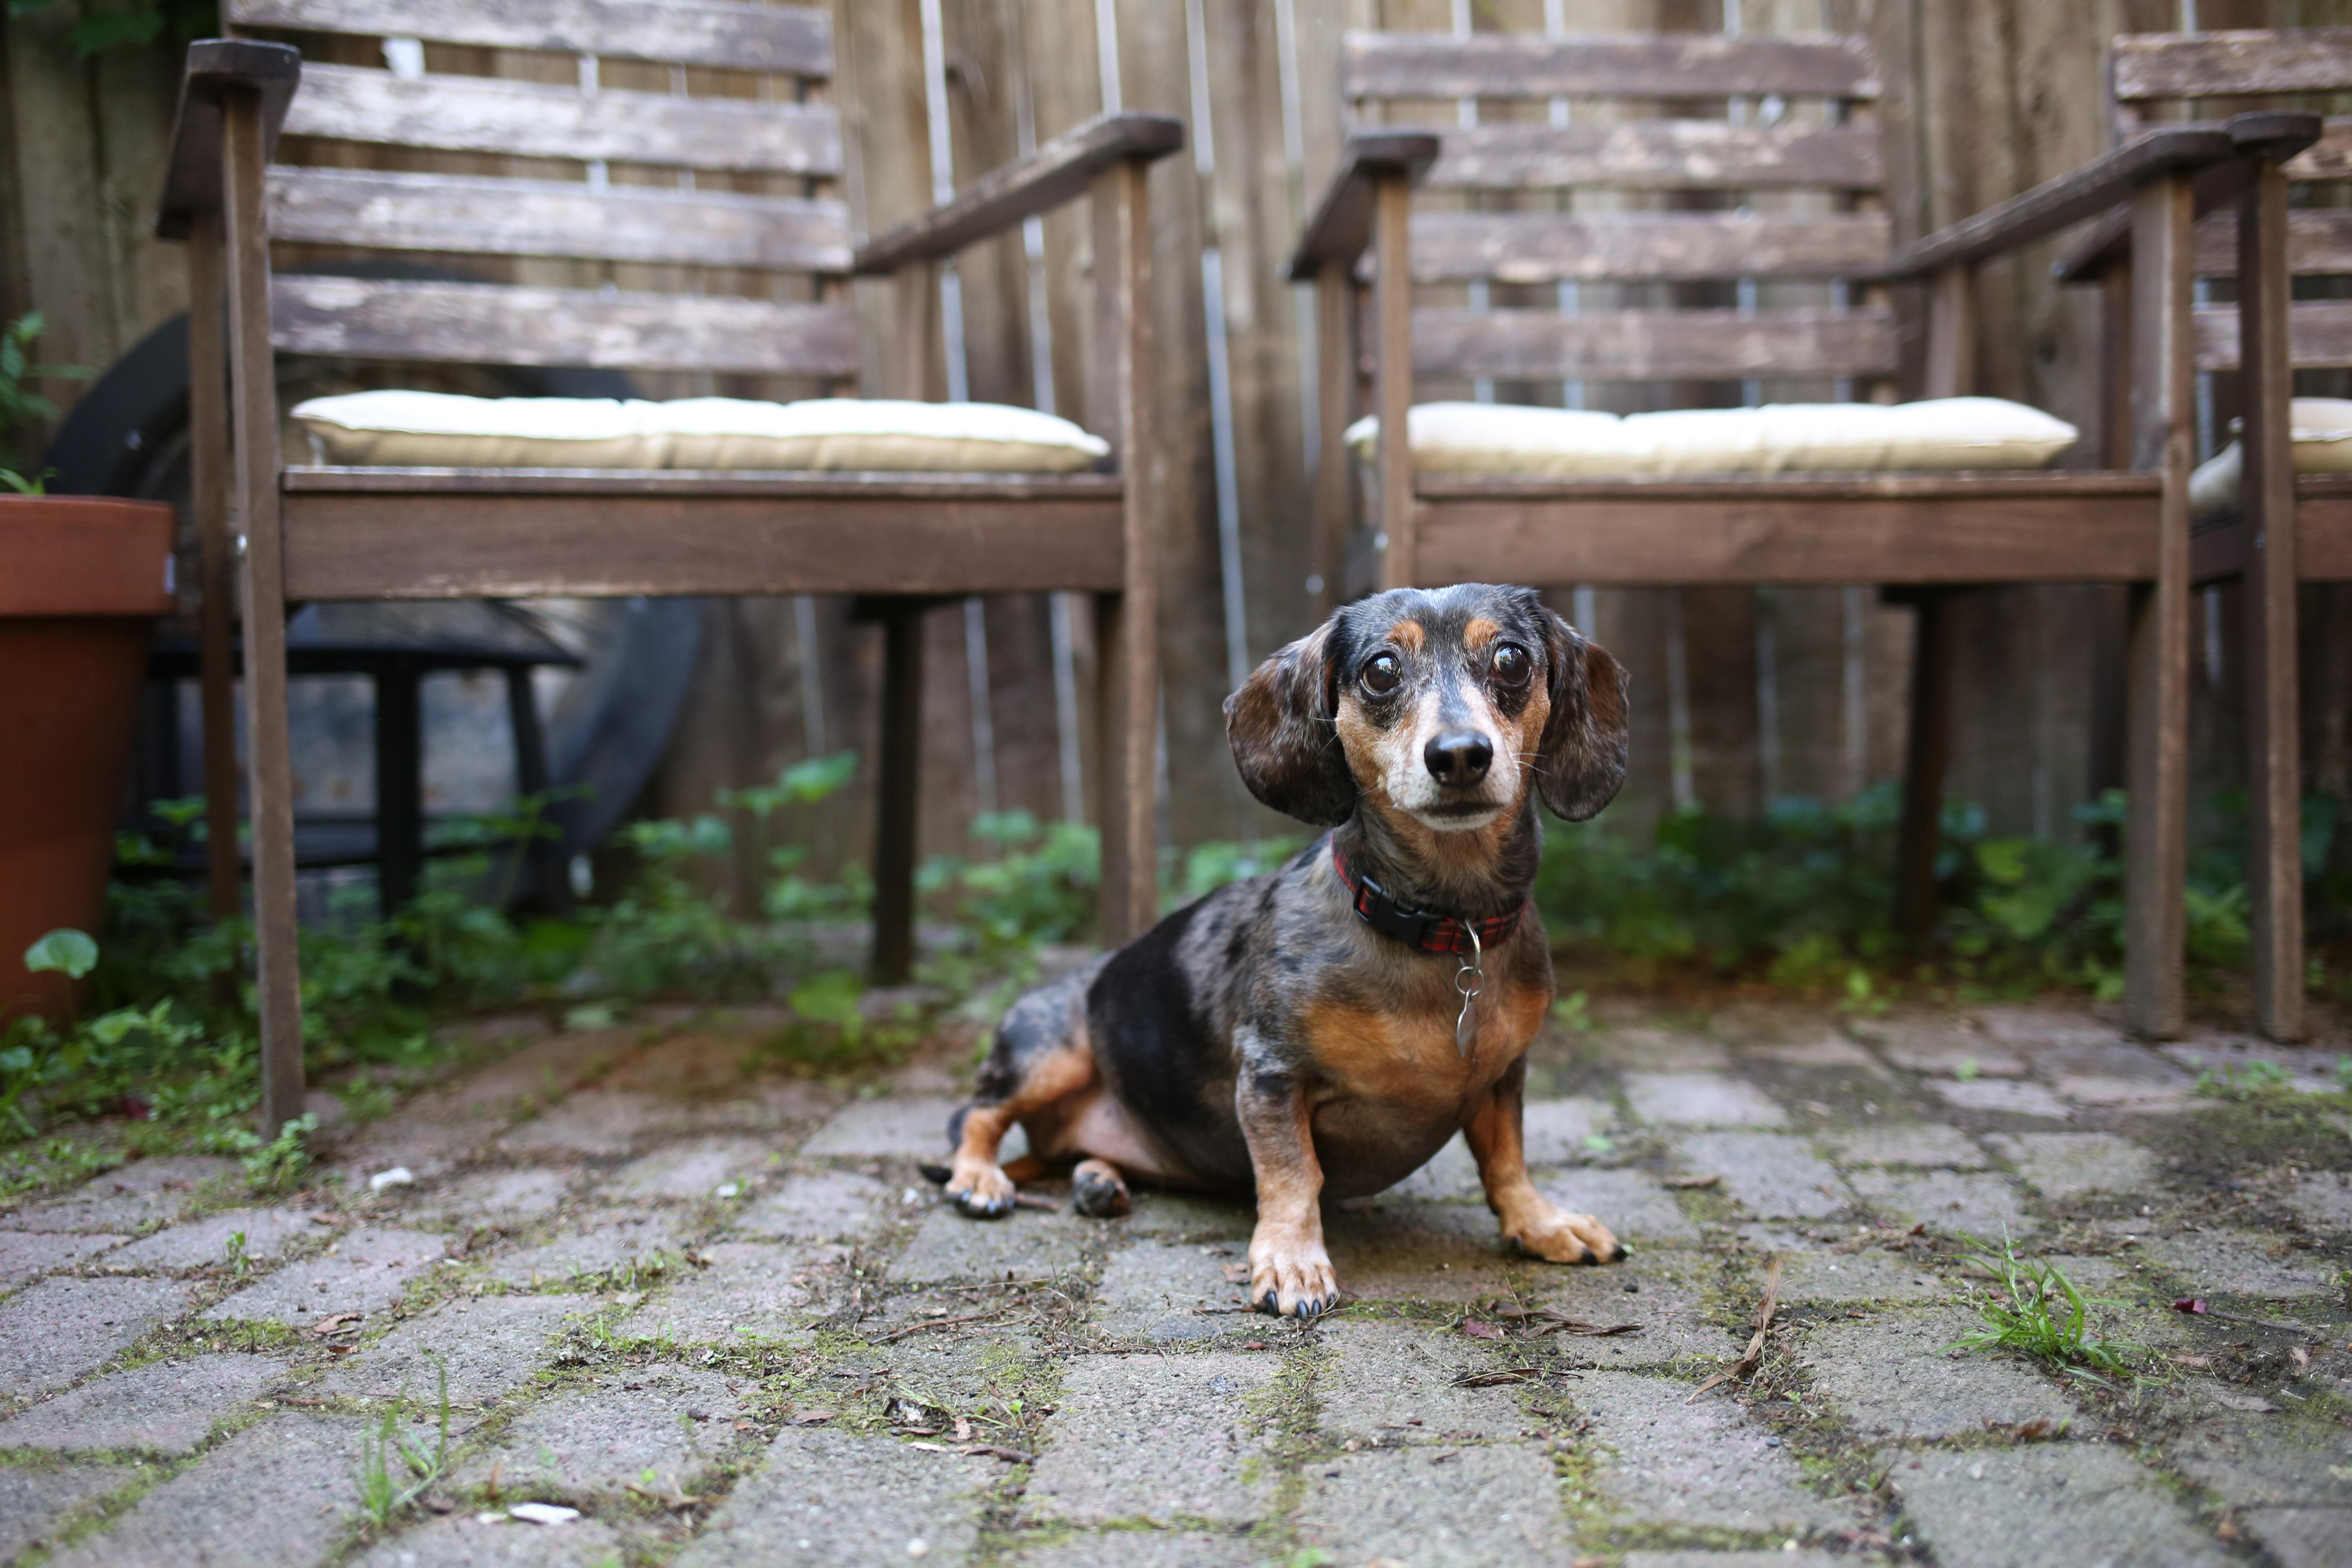 Meet Phoebe, an 11-year-old Dachshund, who is proof that you can age gracefully! Even at 11, she is still an avid hiker and often goes on 10-mile backpacking trips with her dog dad, Steve. Phoebe has done a lot of traveling with her mom, who found her when she was just a three-pound puppy in Laramie, Wyoming and has since lived in Vancouver, Seattle and now D.C. She also has a major love of tennis balls, snuggling under the blankets and chasing squirrels in Lincoln Park. But don't try and wake her up before she's ready or you'll get an earful. Oh, and don't even think about taking Phoebe on athletically because she took home the first place trophy in the 2015 DachtoberFest Dachshund Dash in the senior schnitzel division -- say that five times fast! If you or someone you know has a pet you'd like featured, email us at dcrefined@gmail.com or tag #DCRUFFined and your furbaby could be the next spotlighted! (Image: Amanda Andrade-Rhoades/ DC Refined)